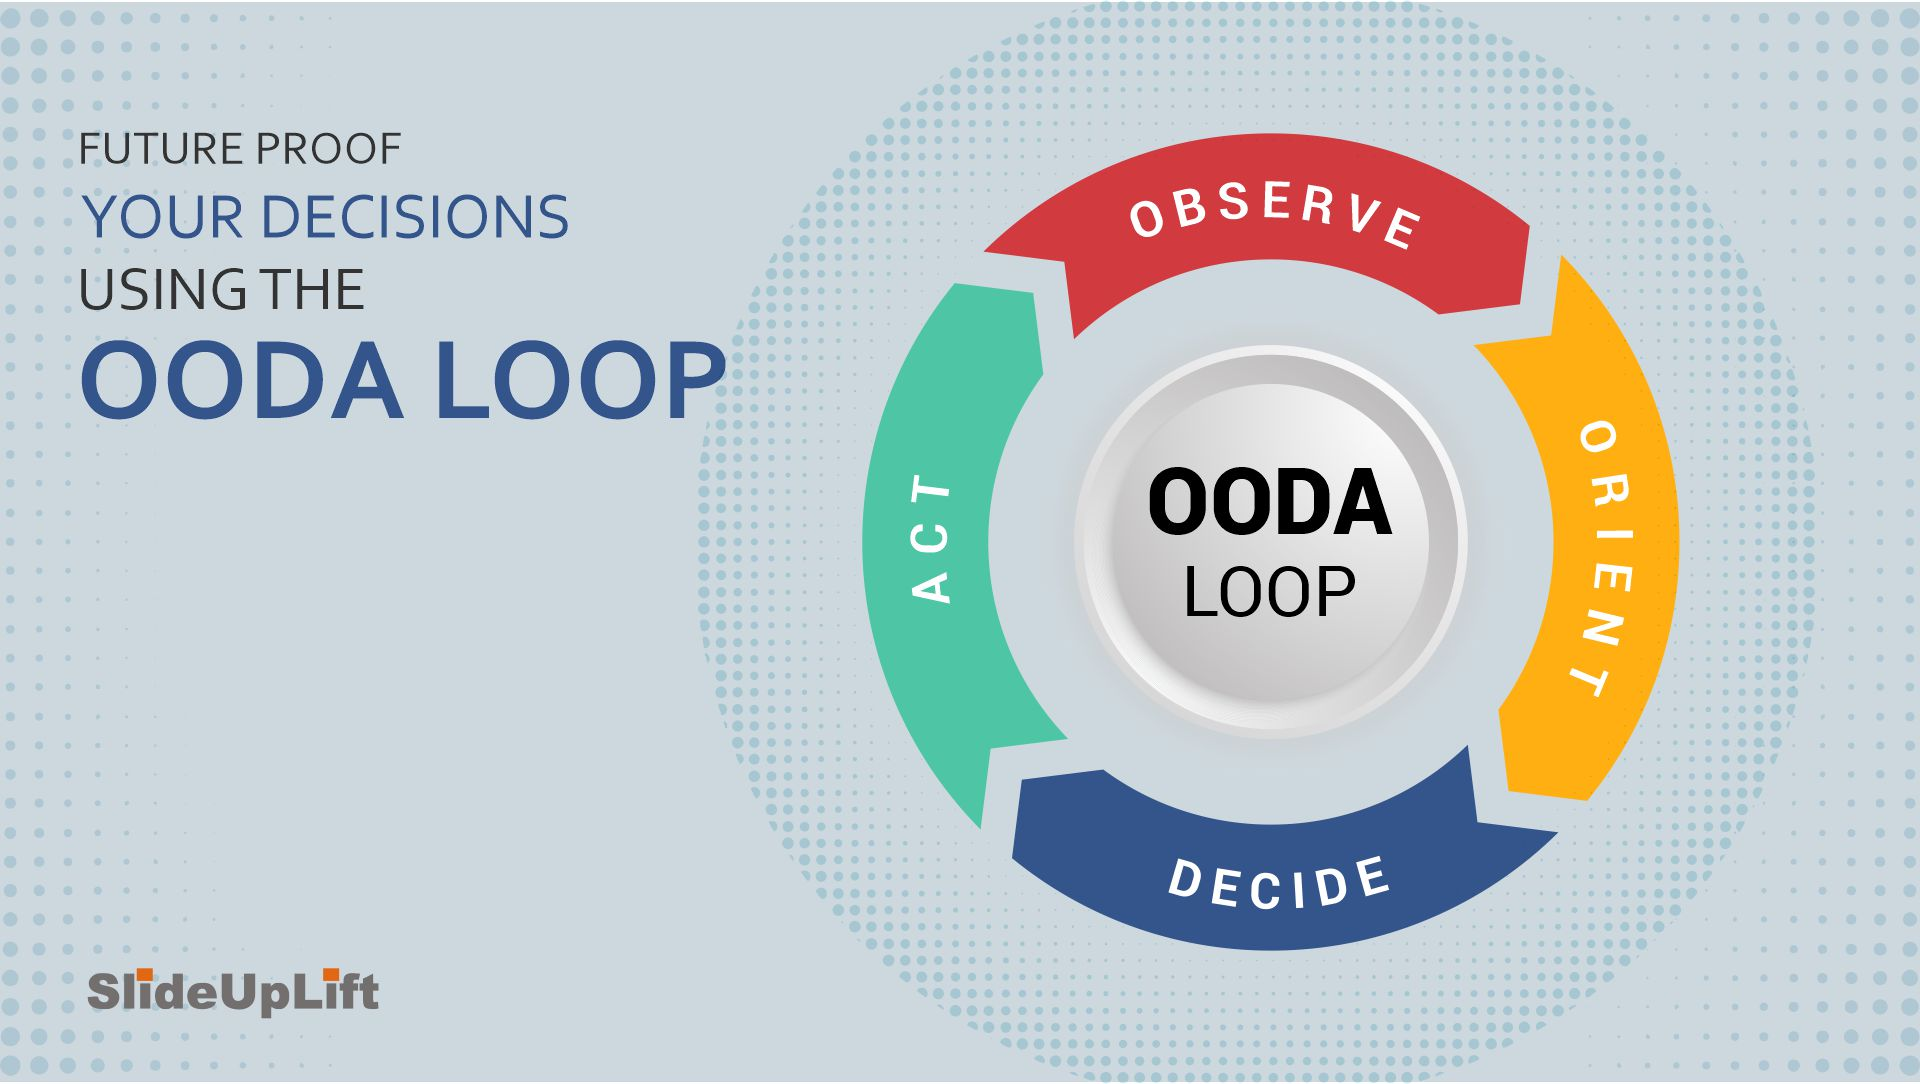 Future Proof Your Decisions Using The OODA Loop - A Framework For Strategic Decision-Making